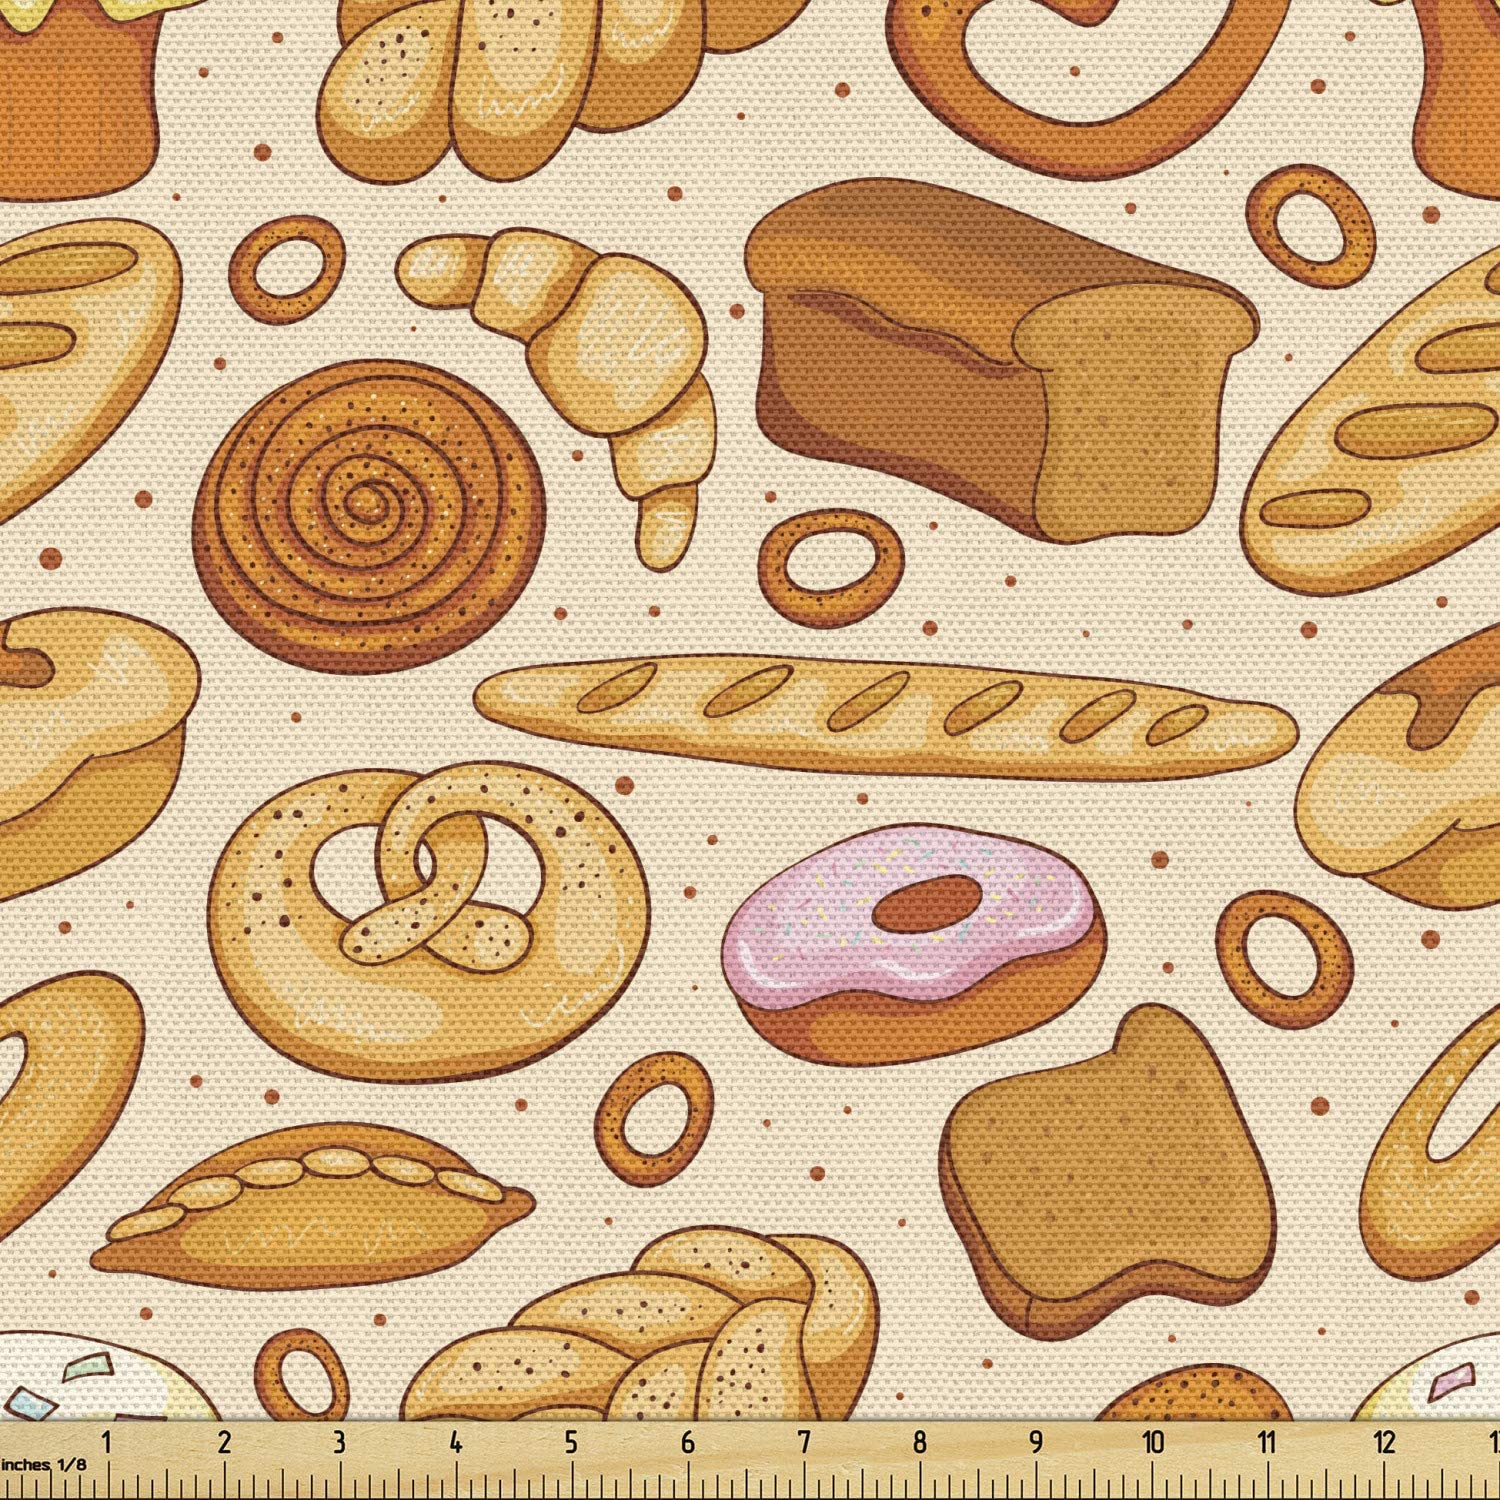 Lunarable Food Fabric by The Yard, Goods from Bakery Bread Doughnut Croissant Bagel and Cinnamon Bun Sketch Design, Decorative Fabric for Upholstery and Home Accents, 1 Yard, Beige Brown